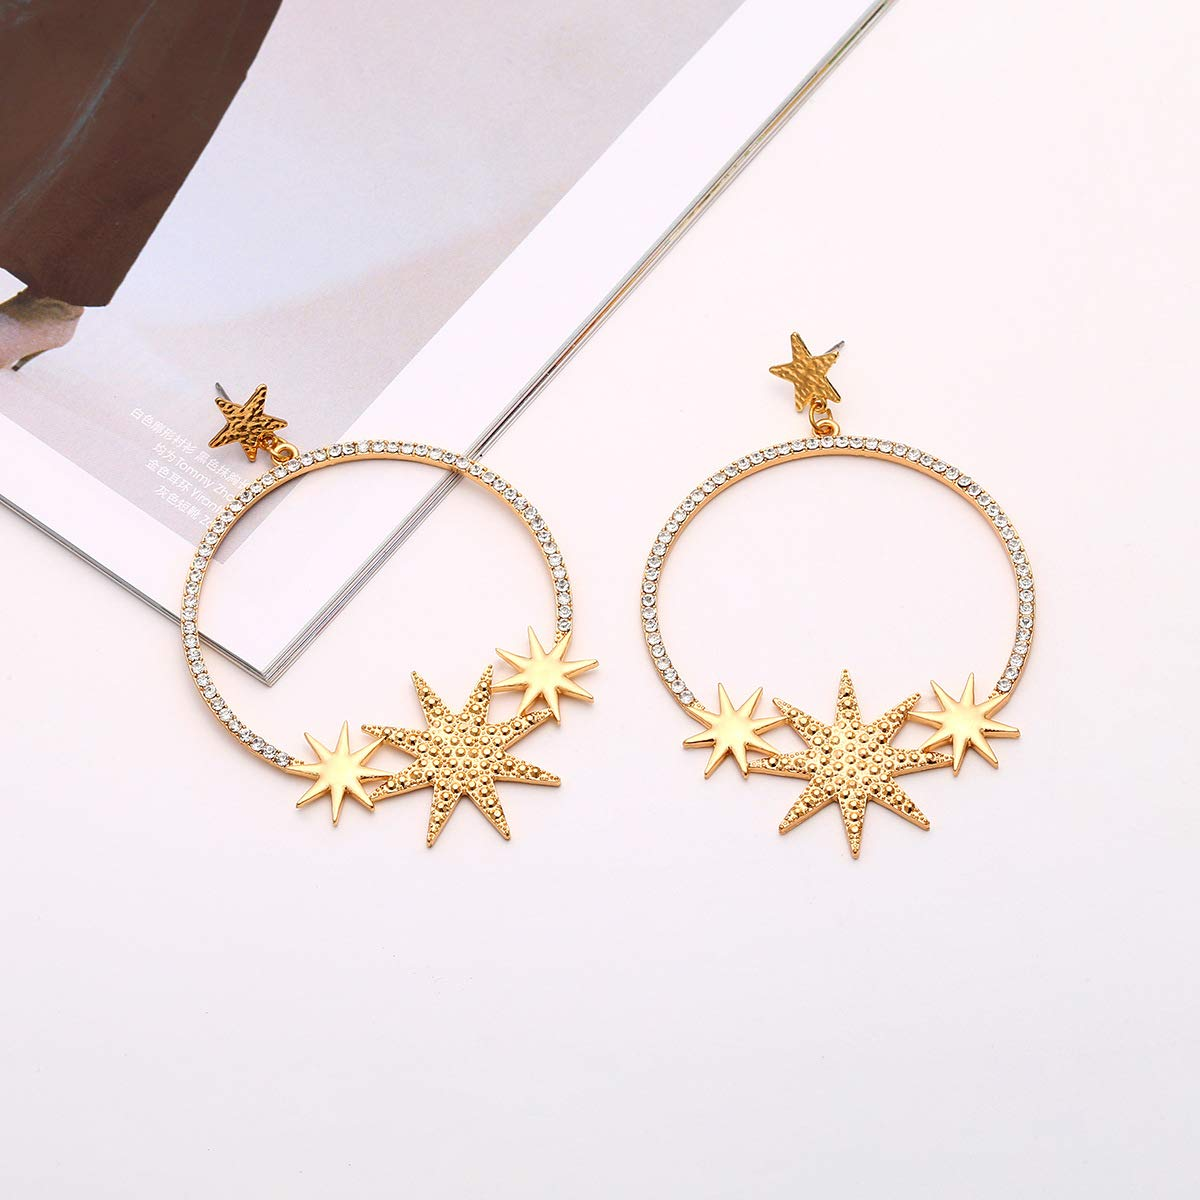 JXVLUYE Charm Earring for Women Girls Great Gifts for Women Girls Stars Earrings